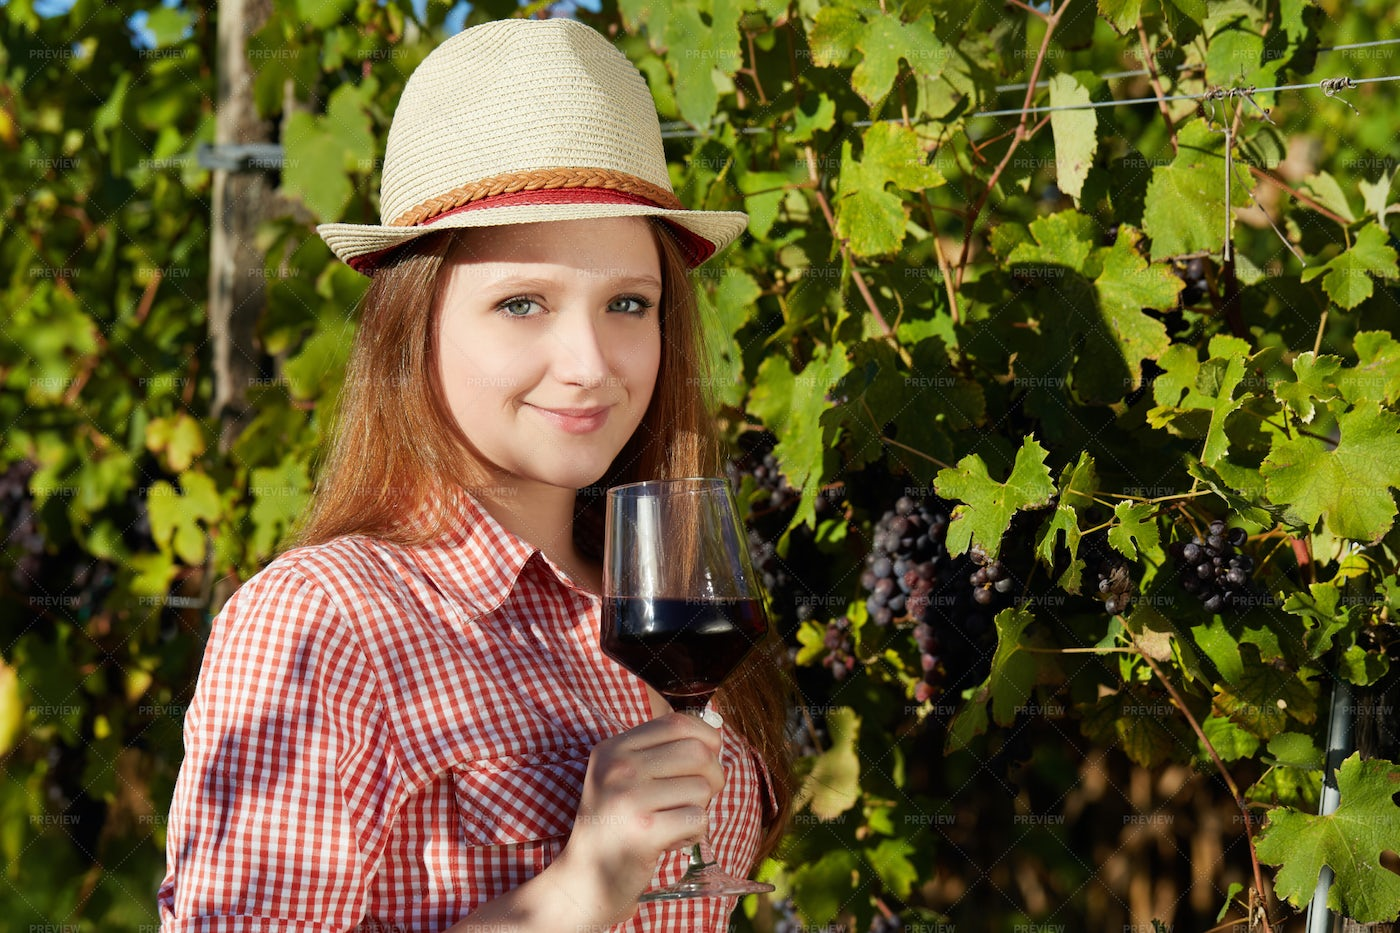 Wine From Vineyard Grapes: Stock Photos